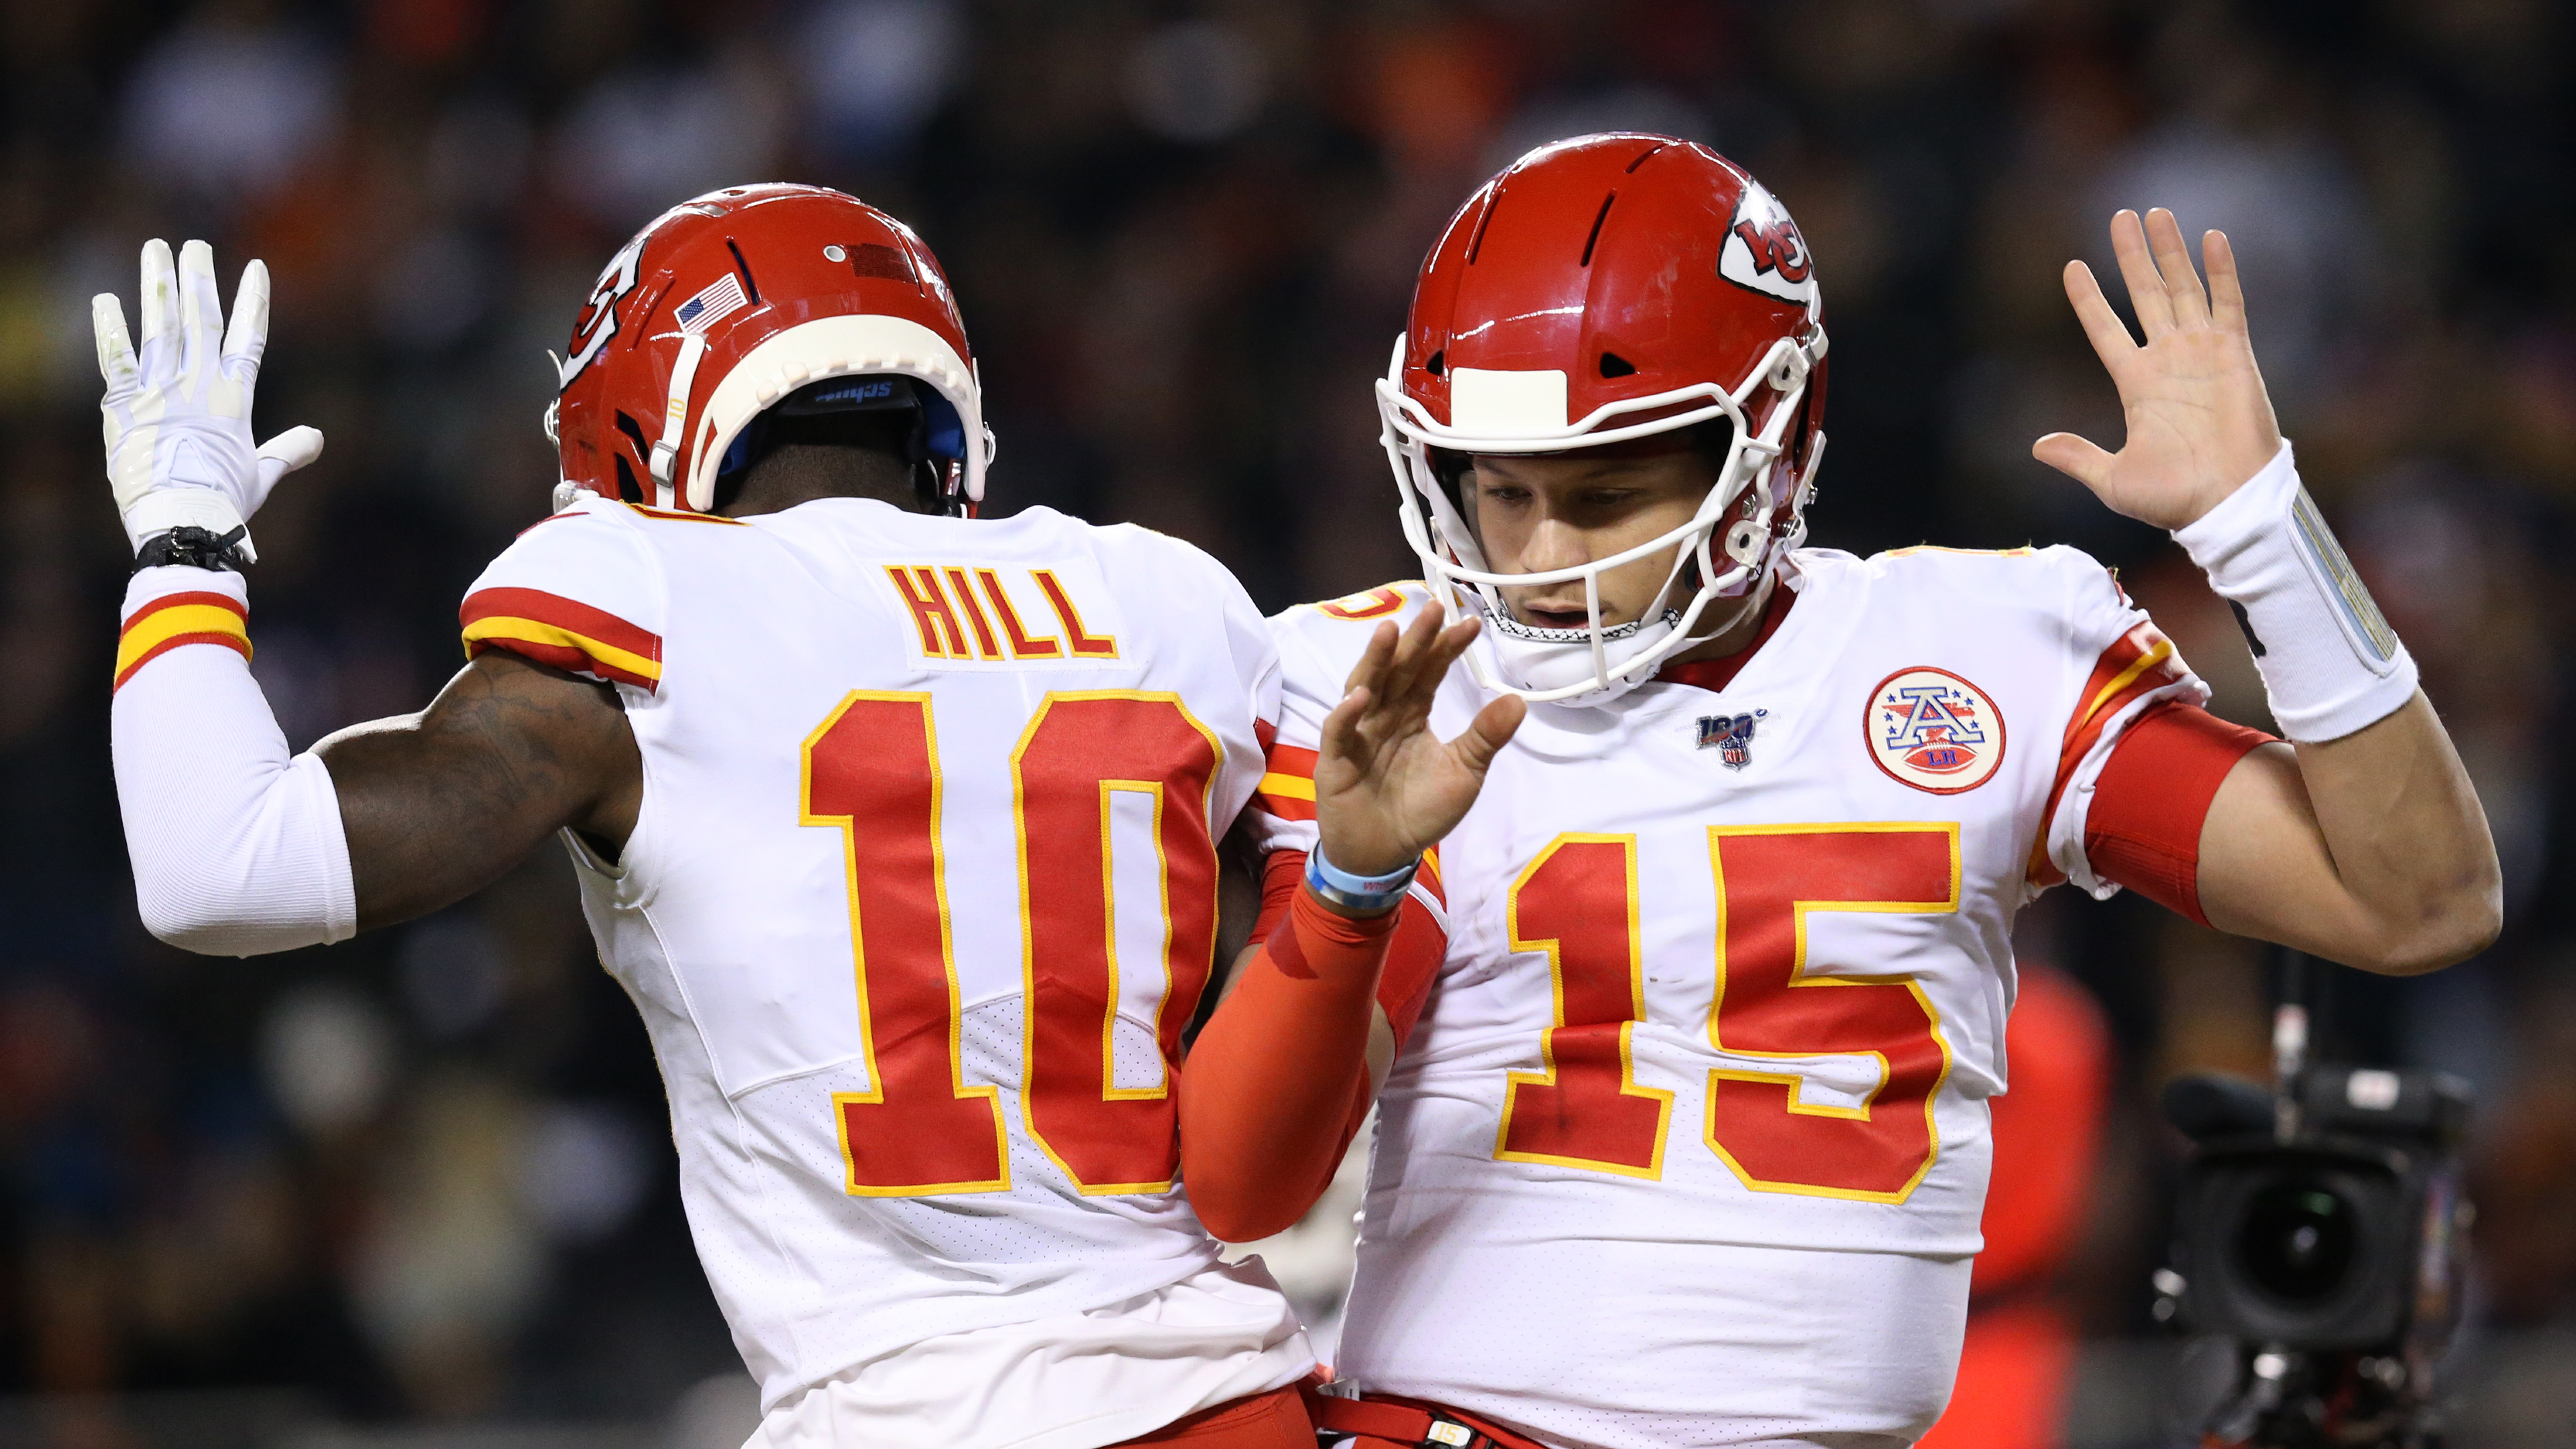 Tyreek Hill reveals his first impression of Patrick Mahomes: